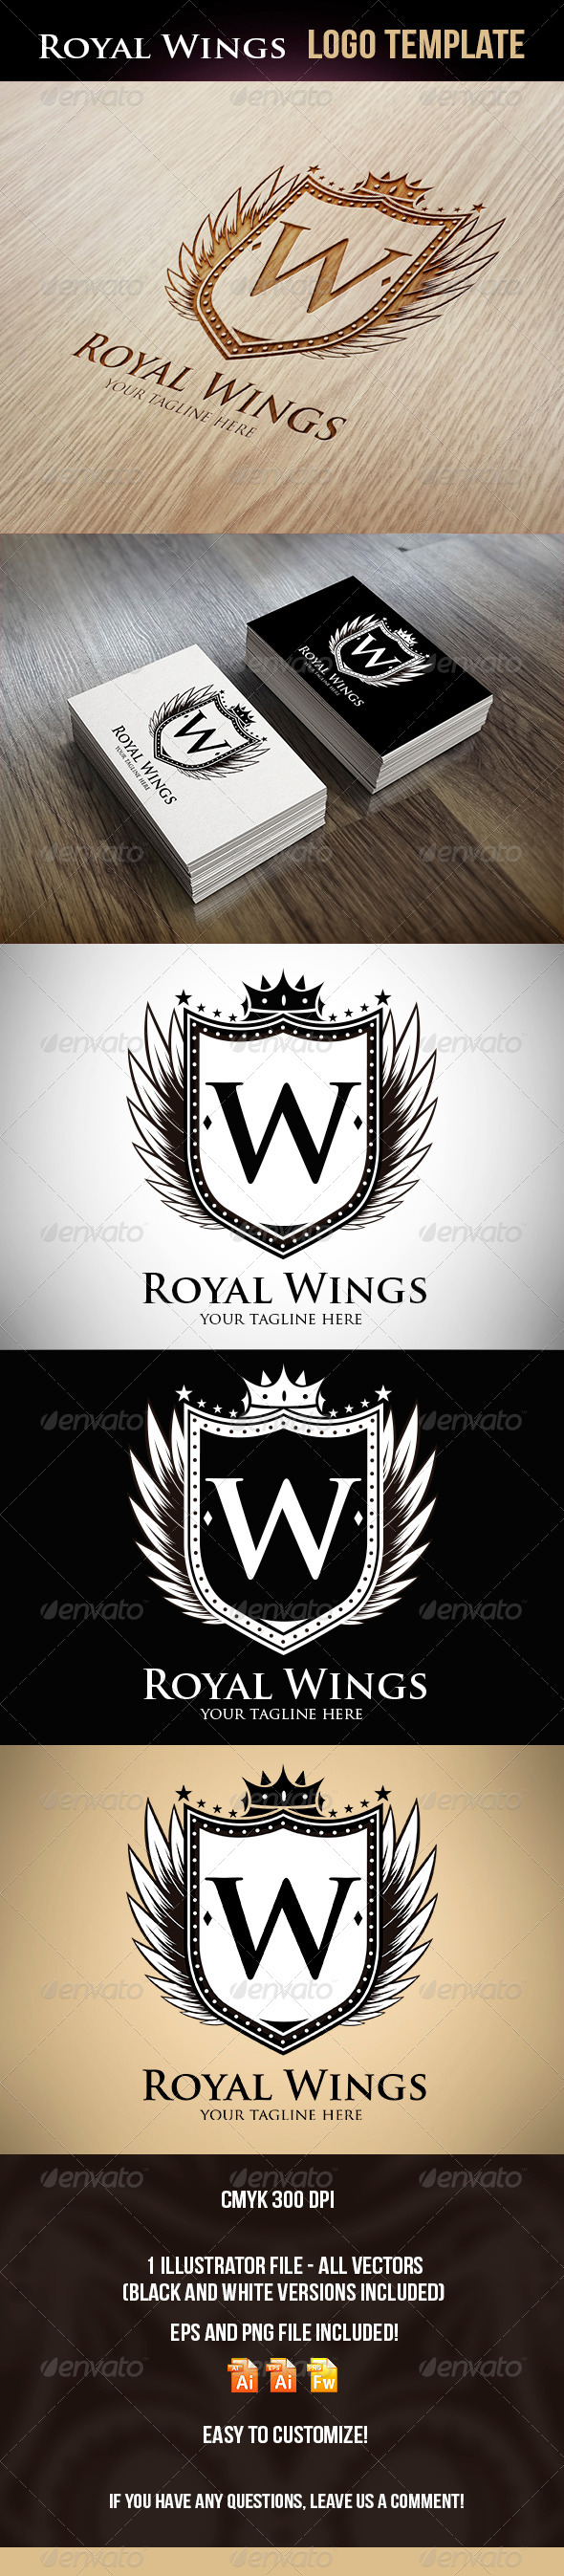 Royal Wings Logo Template - Logo Templates